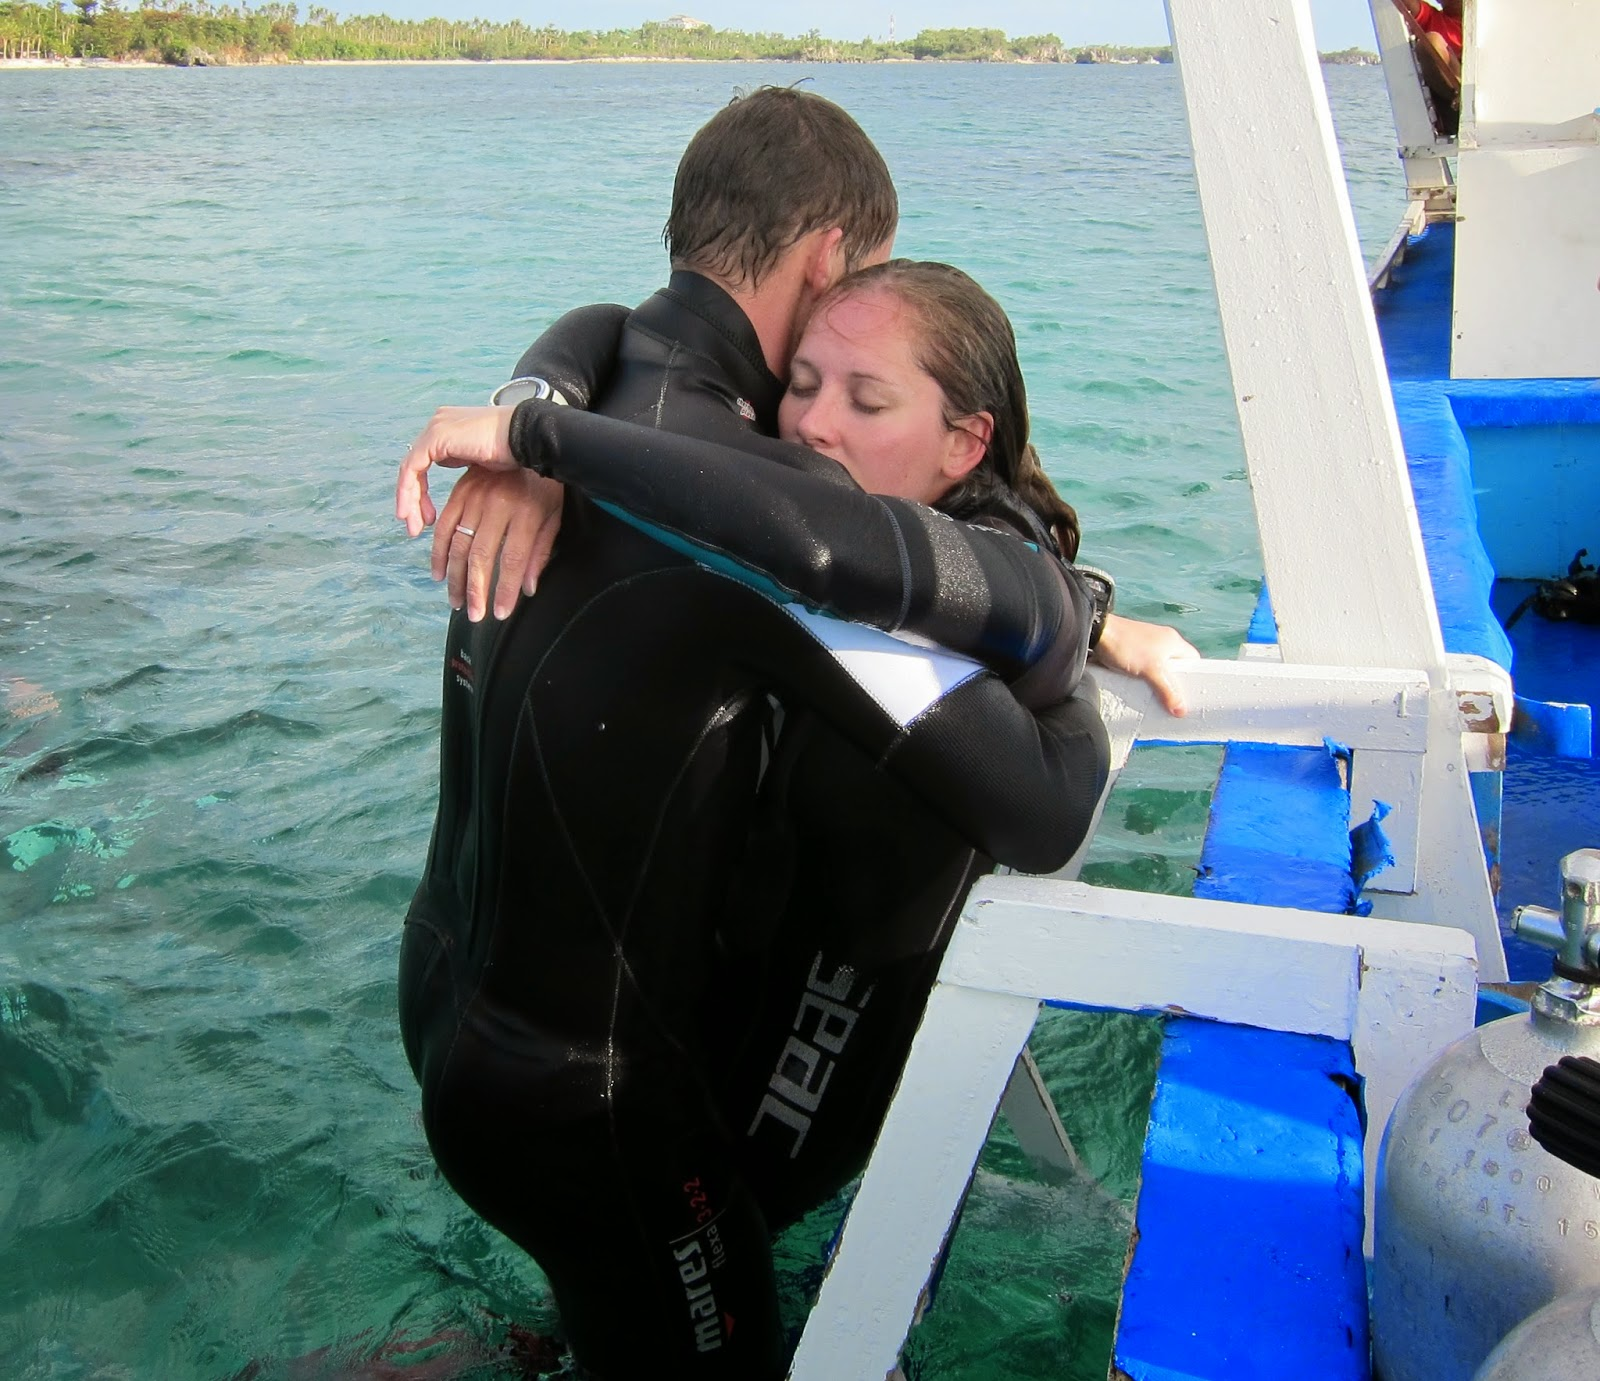 Padi Rescue diver student Patrick lifts unresponsive diver, Kathy from the water in Malapascua, Philippines